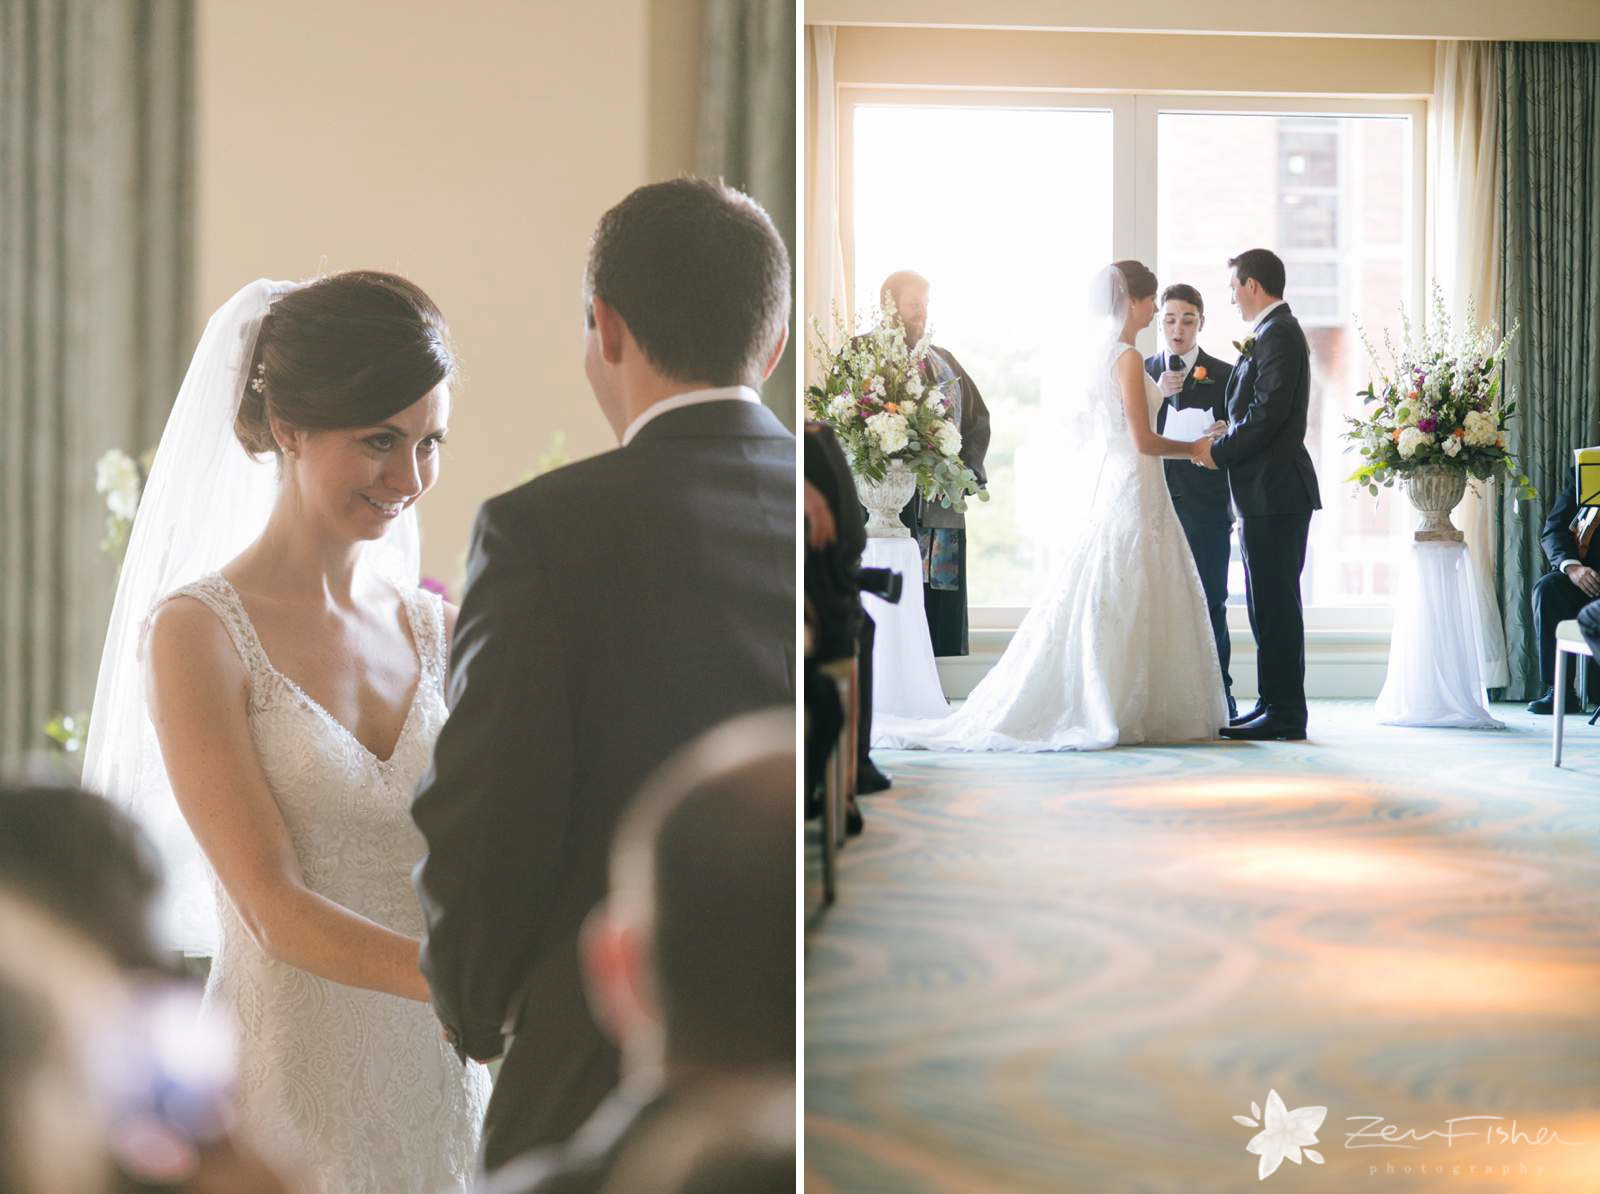 Bride's reaction during ceremony, bride smiling up at groom, best man does a reading during ceremony